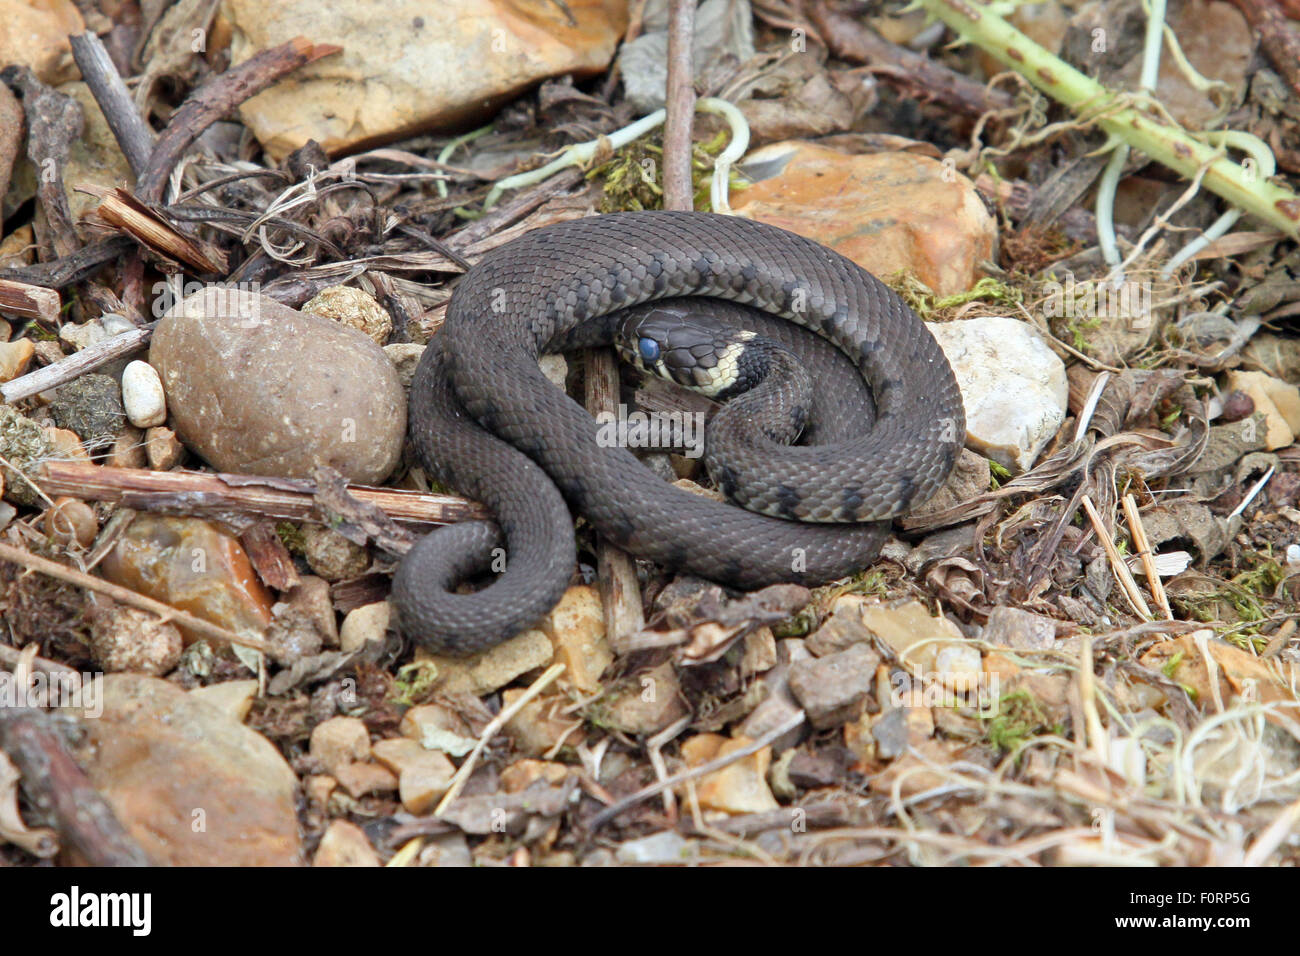 British grass snake basking in a sunny, sheltered position. - Stock Image